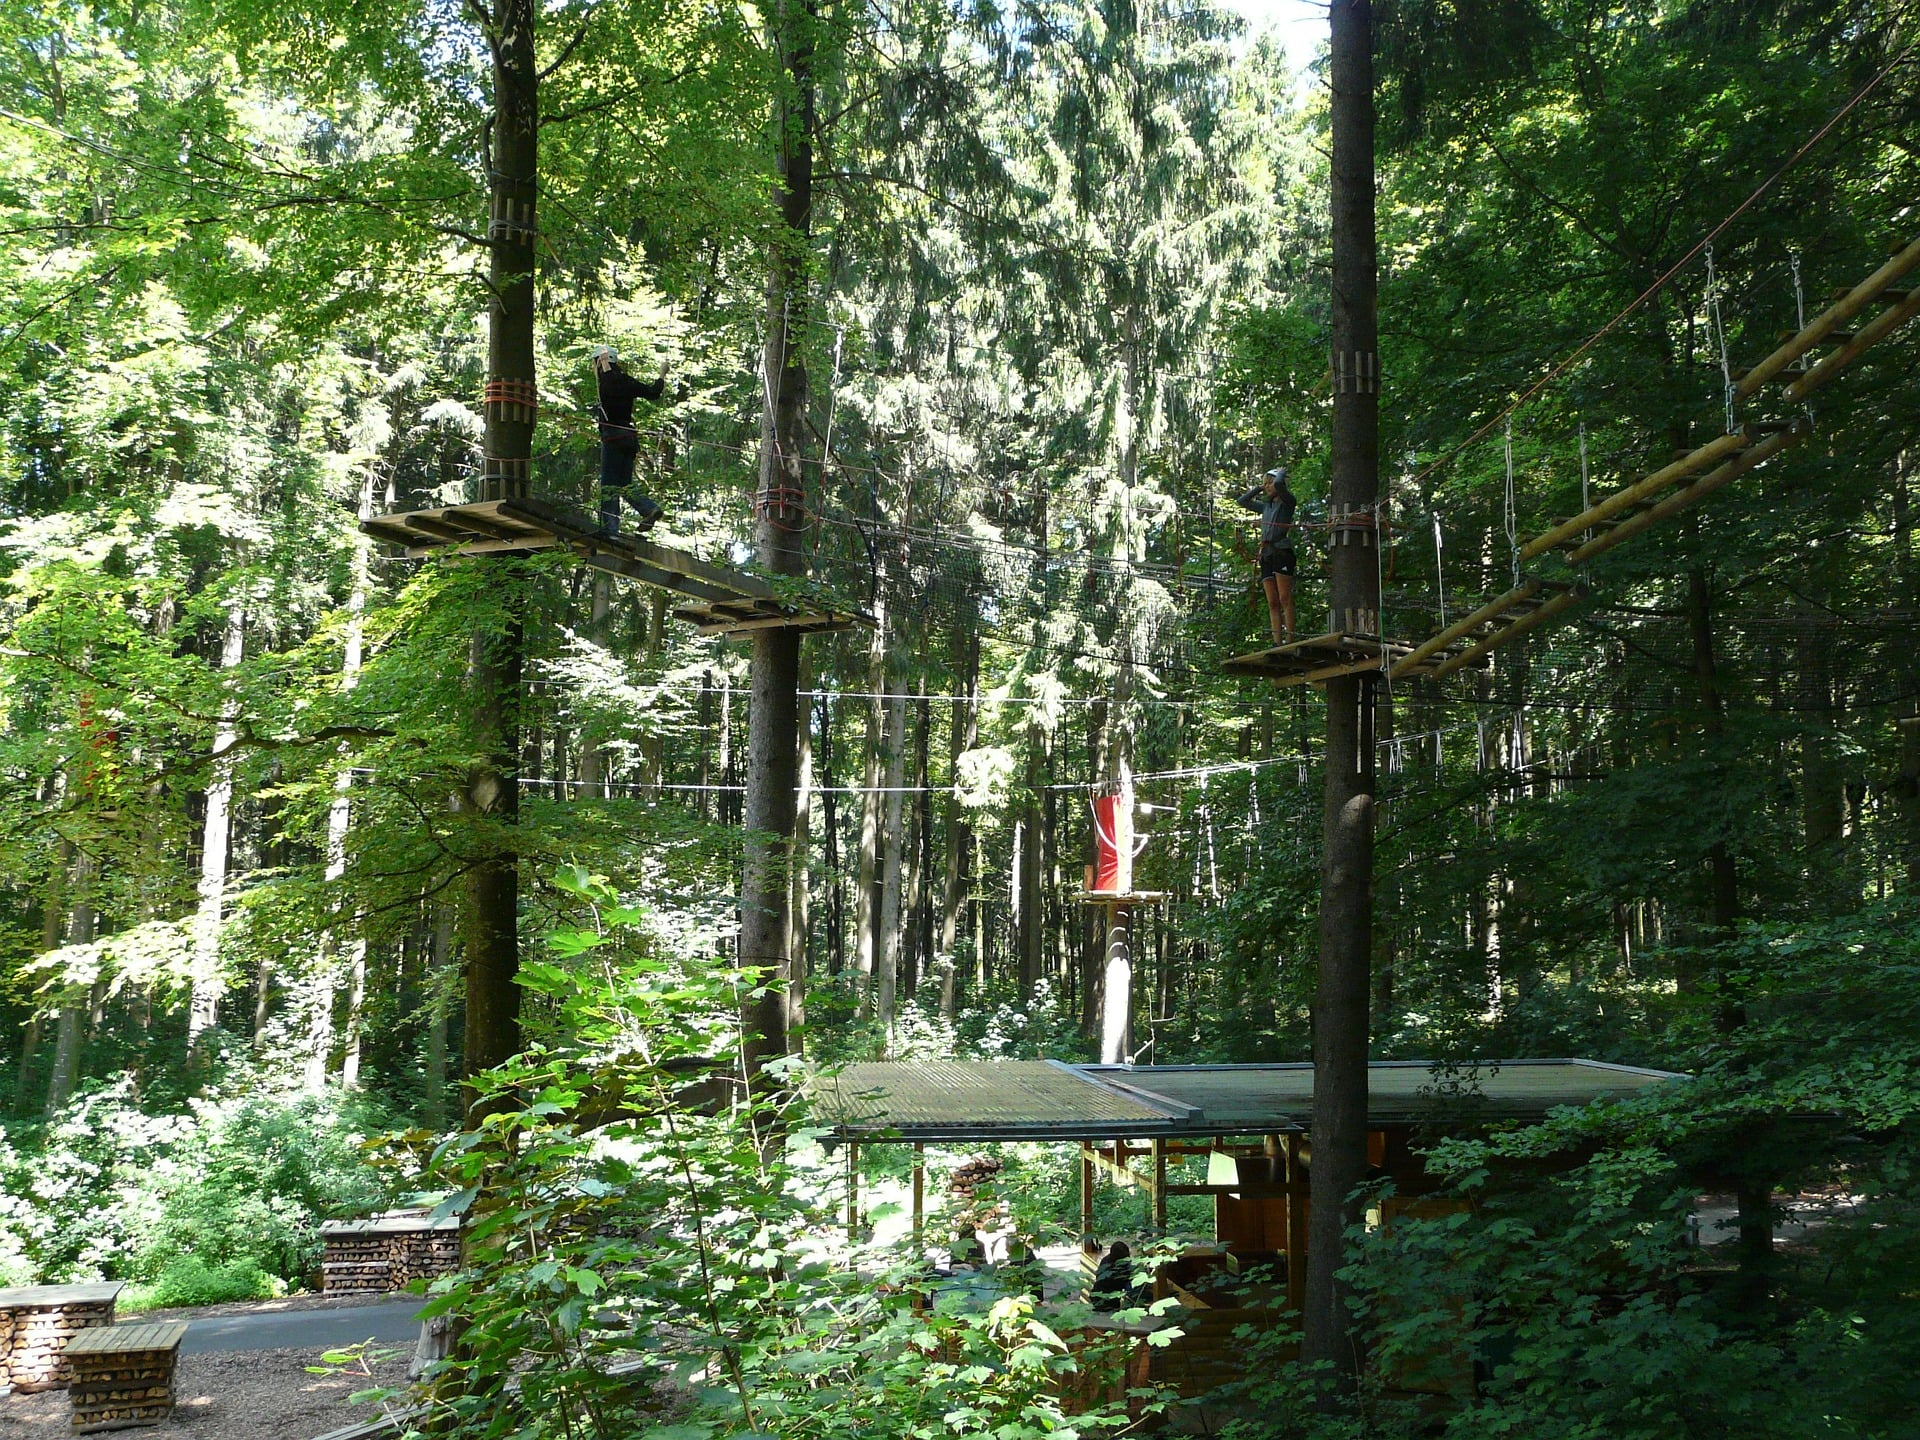 Adventure course in the trees